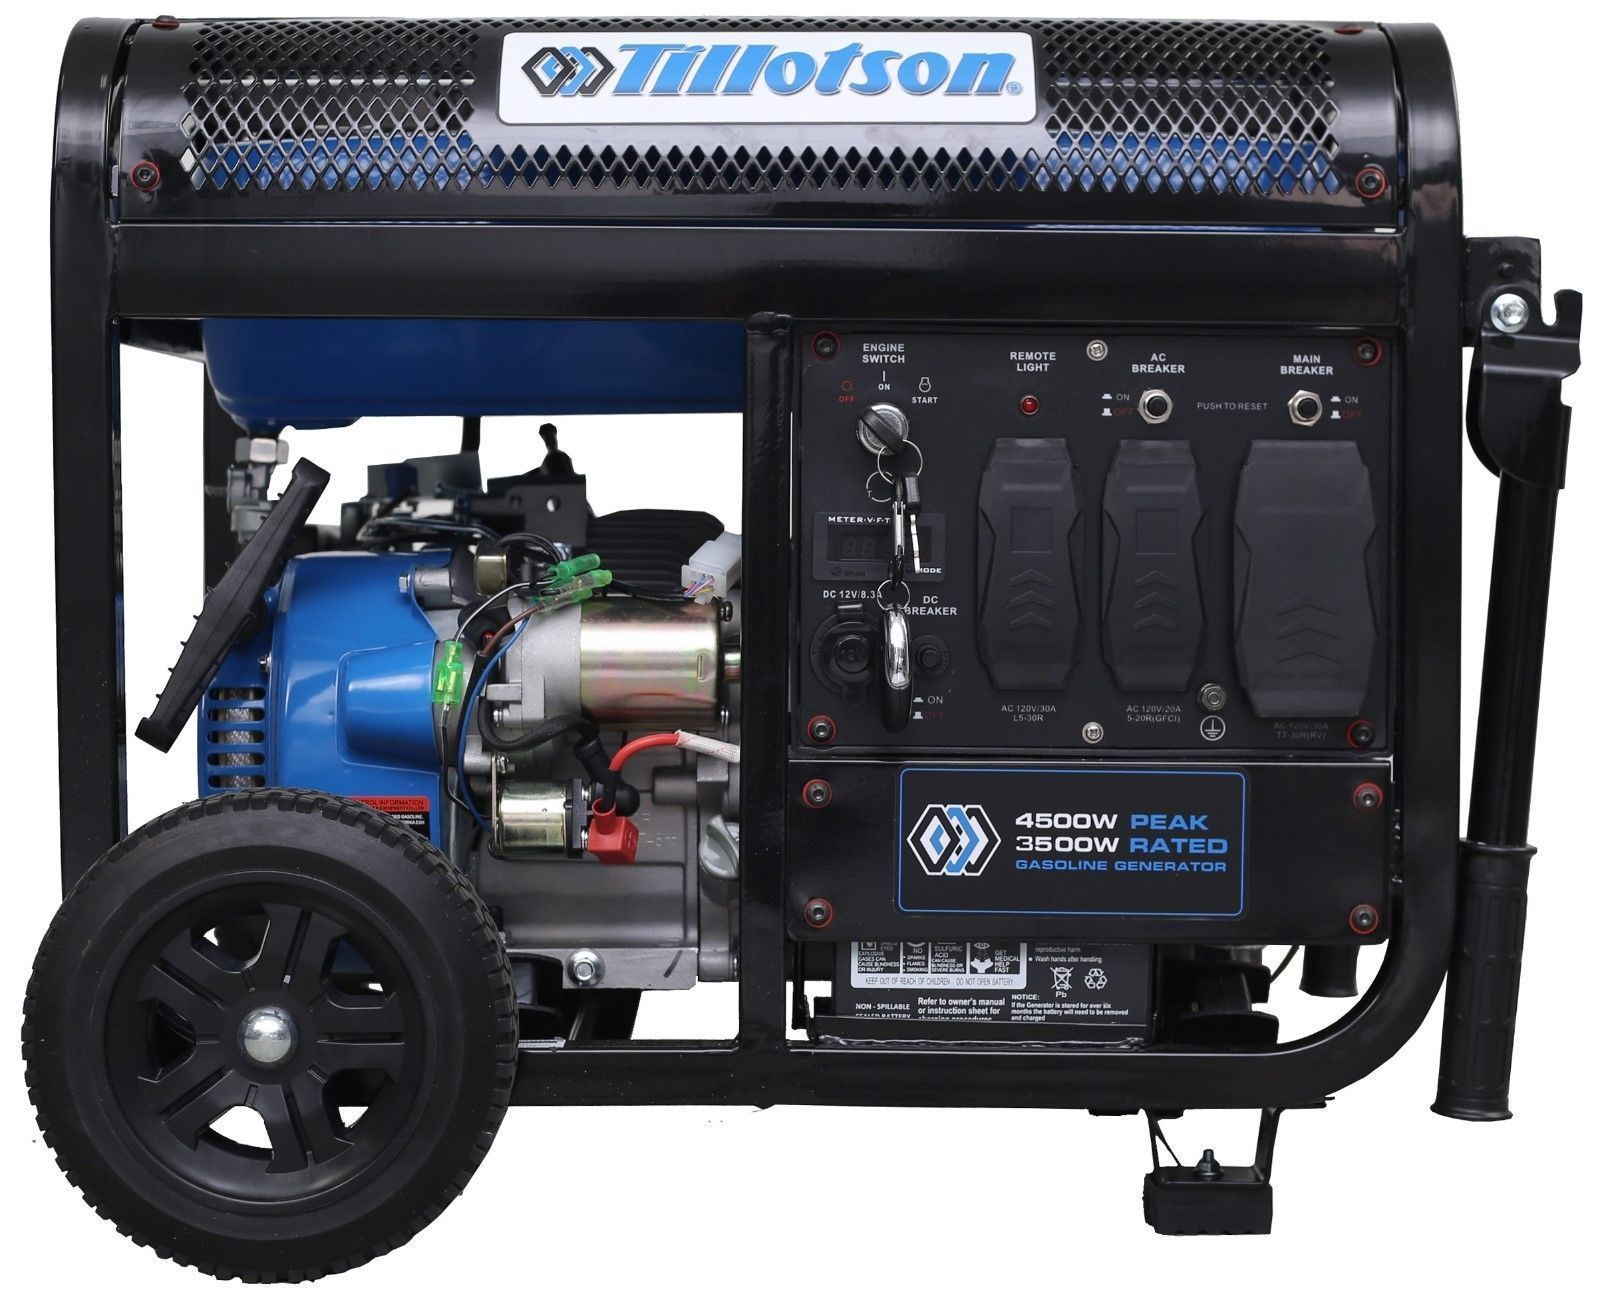 medium resolution of tillotson generator 4500 gasoline operated with remote control